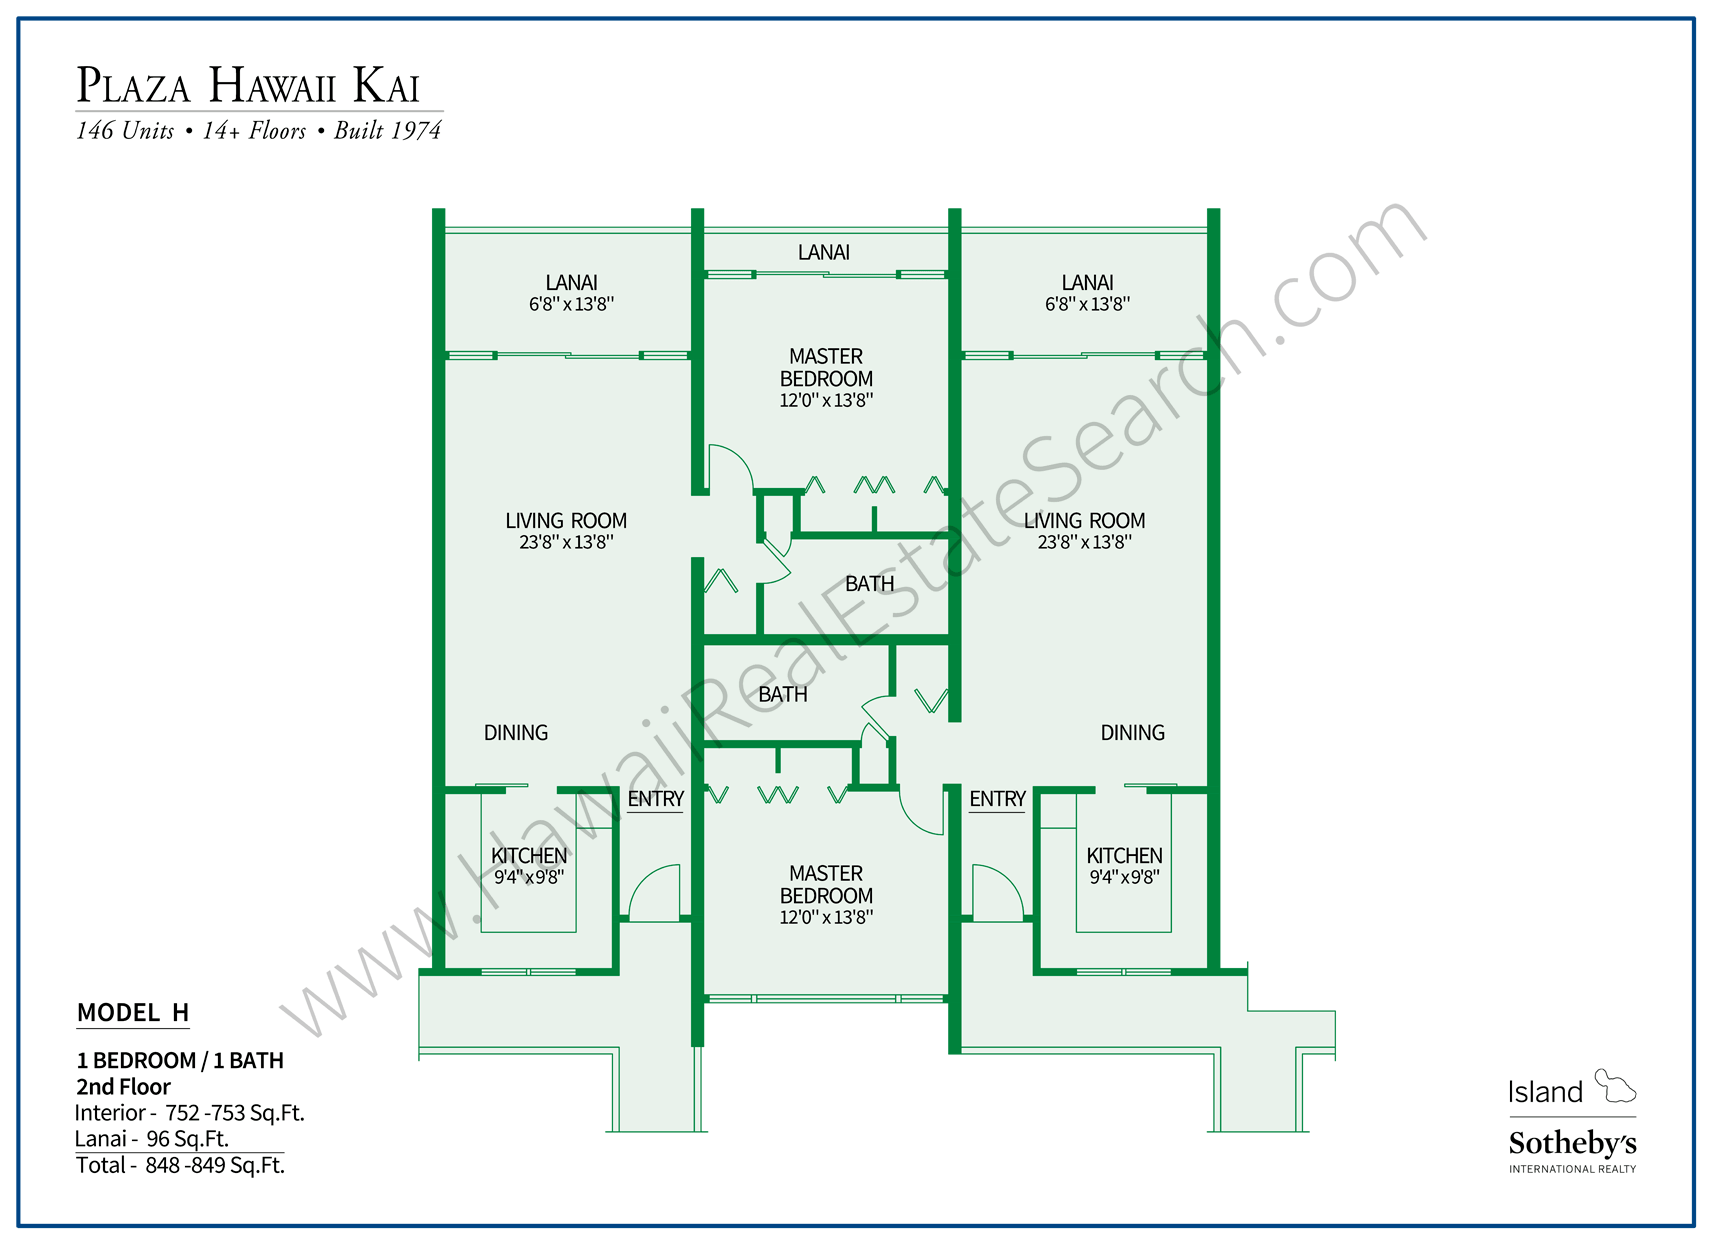 Plaza Hawaii Kai Floor Plan HH